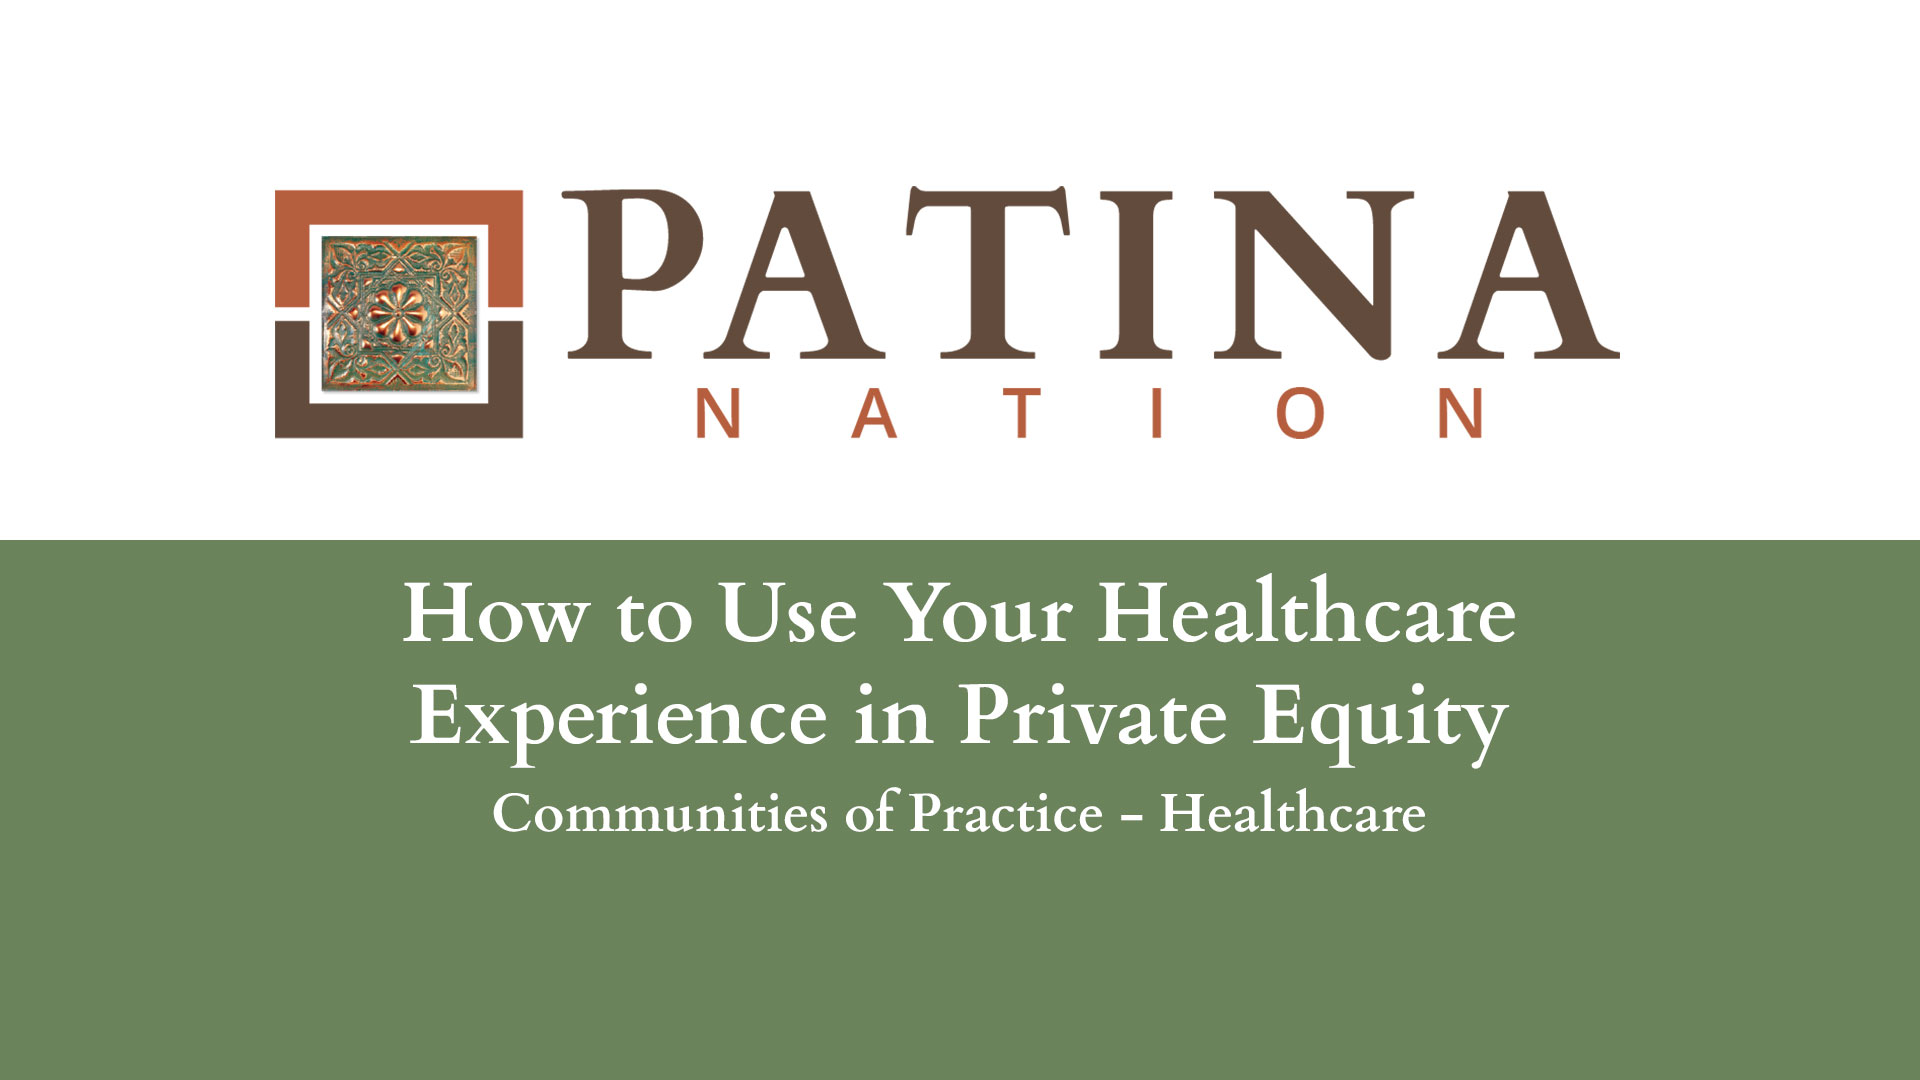 How to Use Your Healthcare Experience in Private Equity